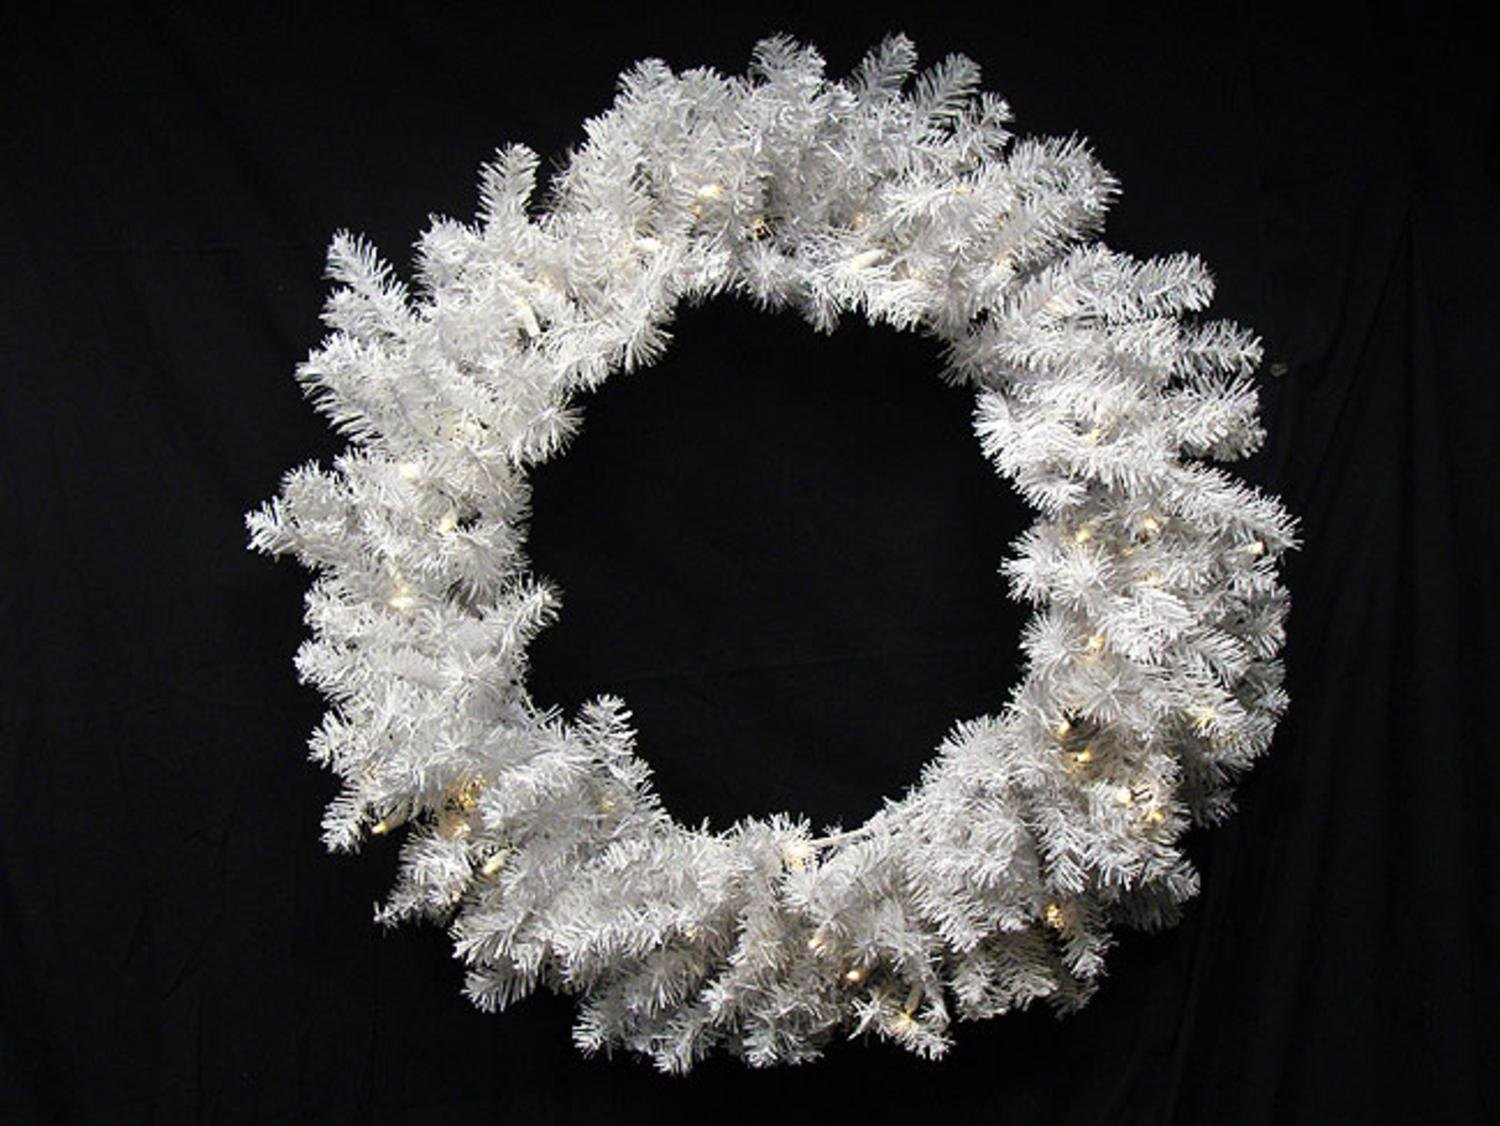 Darice 24'' Battery Operated Pre-Lit LED Snow White Christmas Wreath - Clear Lights